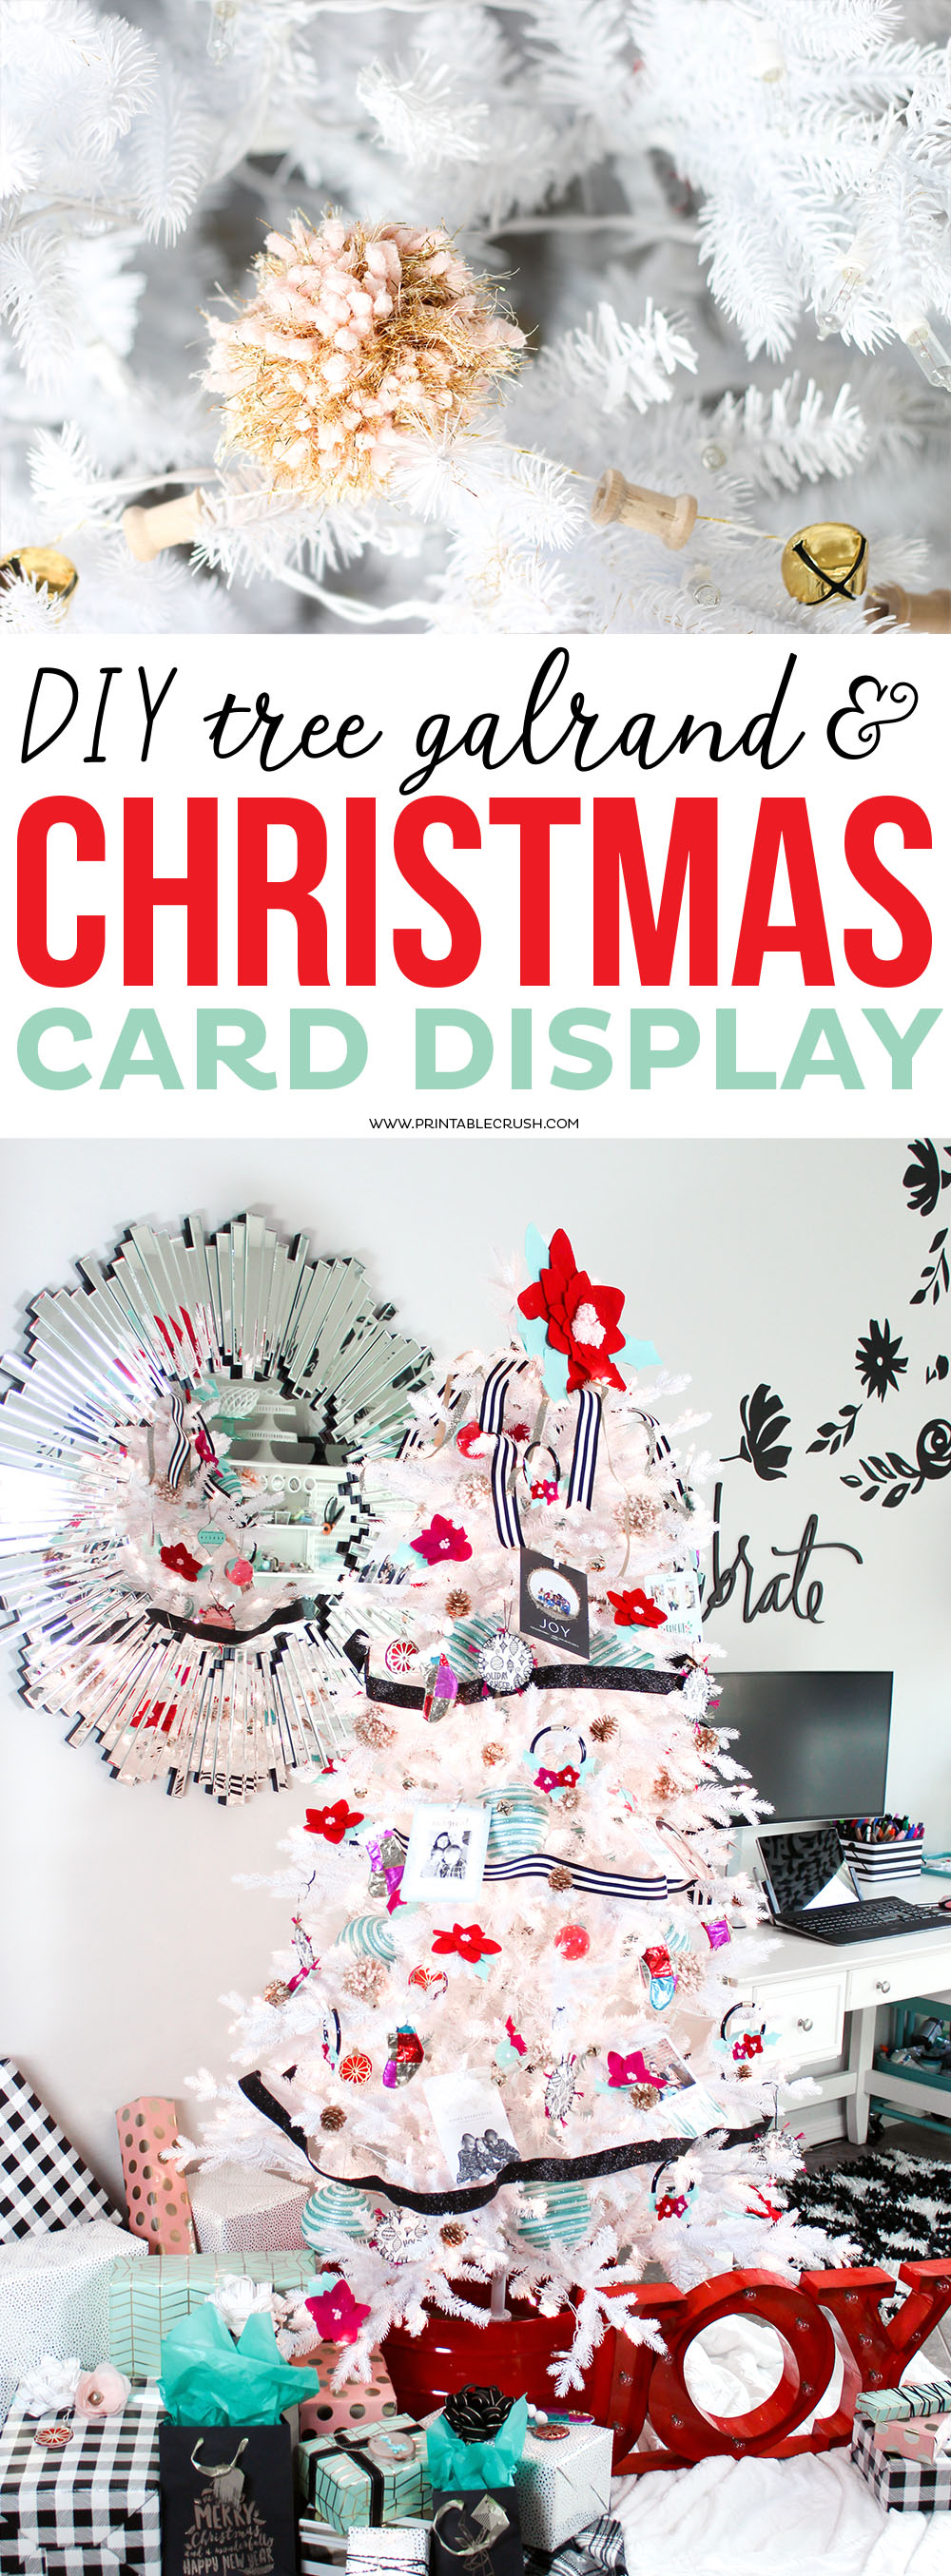 Diy Tree Garland Christmas Card Display Printable Crush